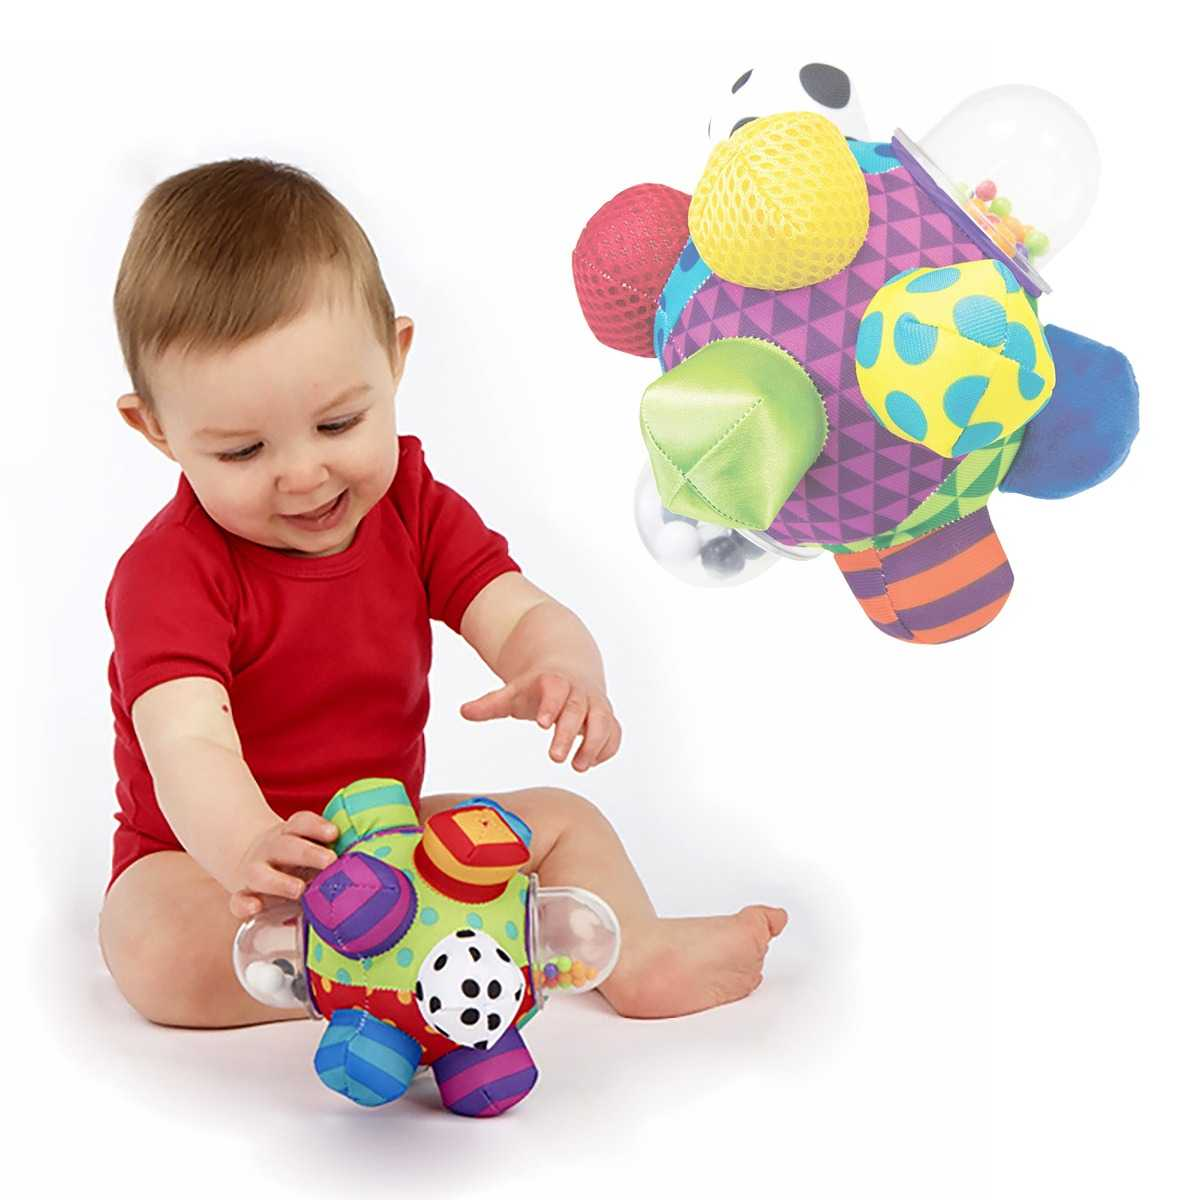 Cognitive Developmental Bumpy Ball Toy for Babies from ...